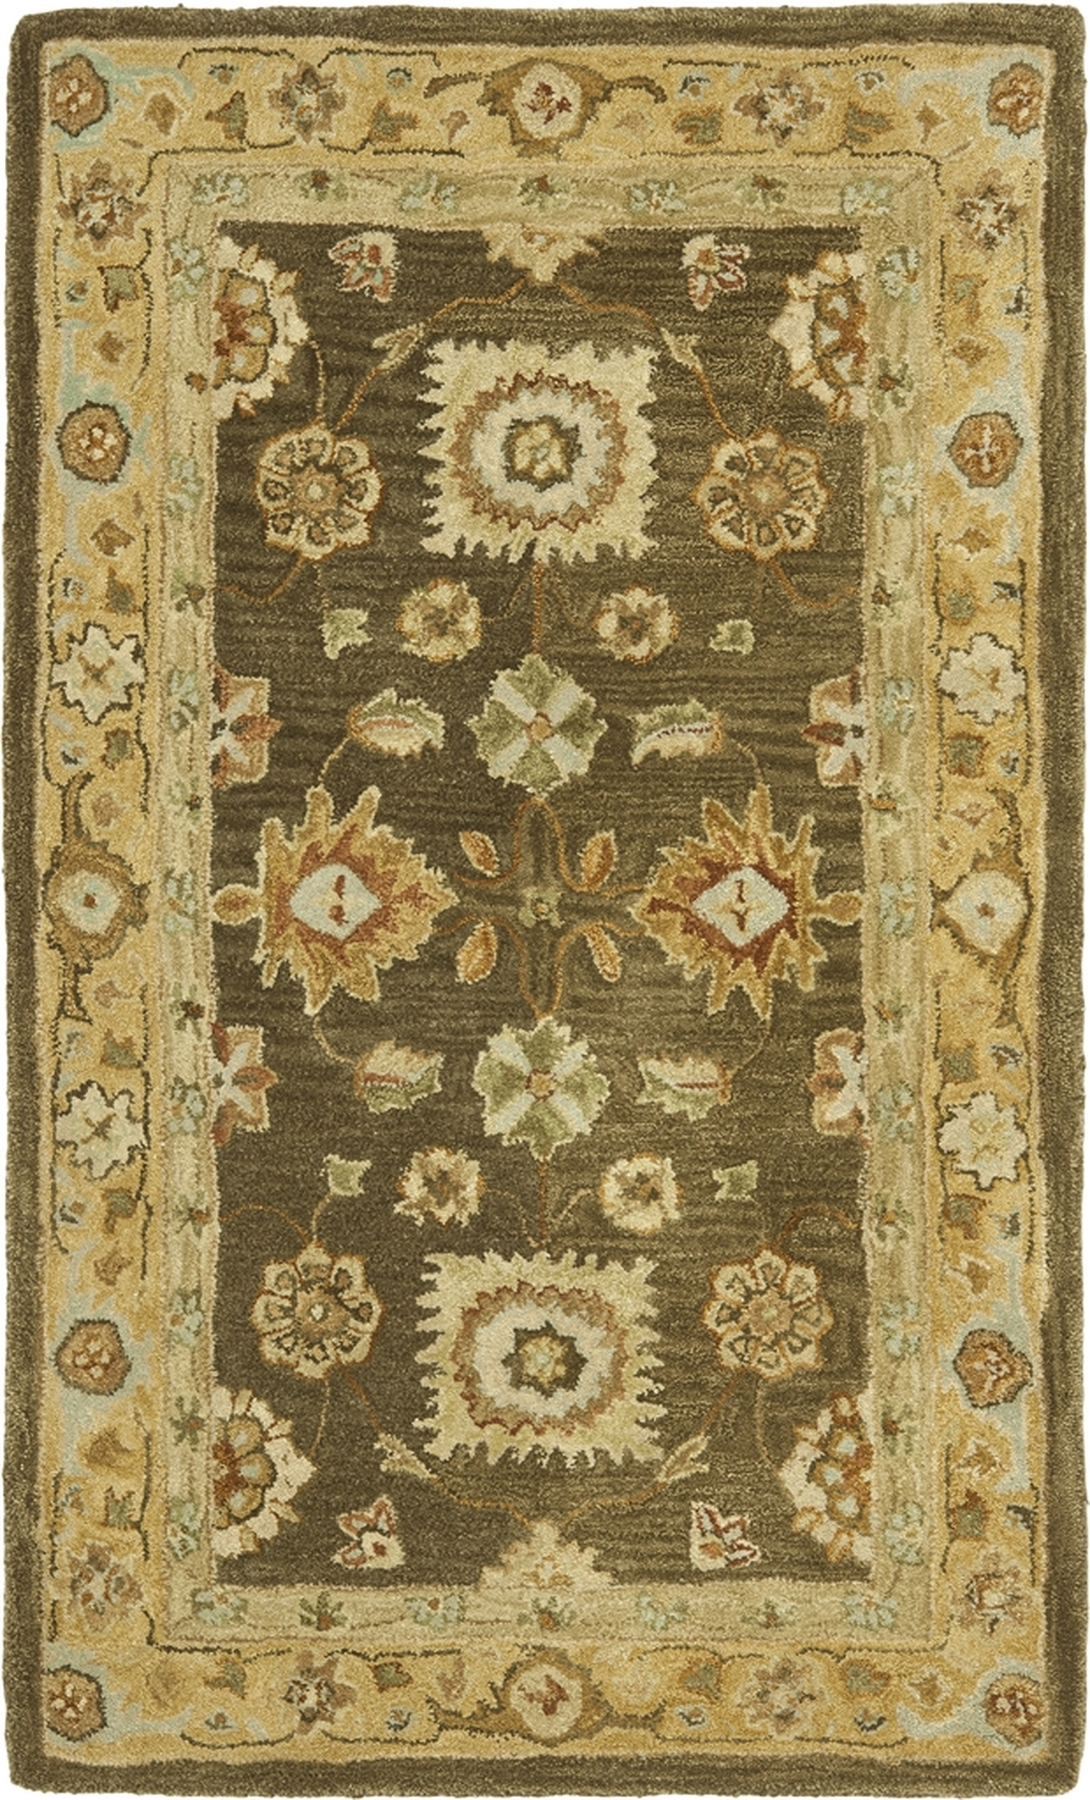 Rug An556c Anatolia Area Rugs By Safavieh